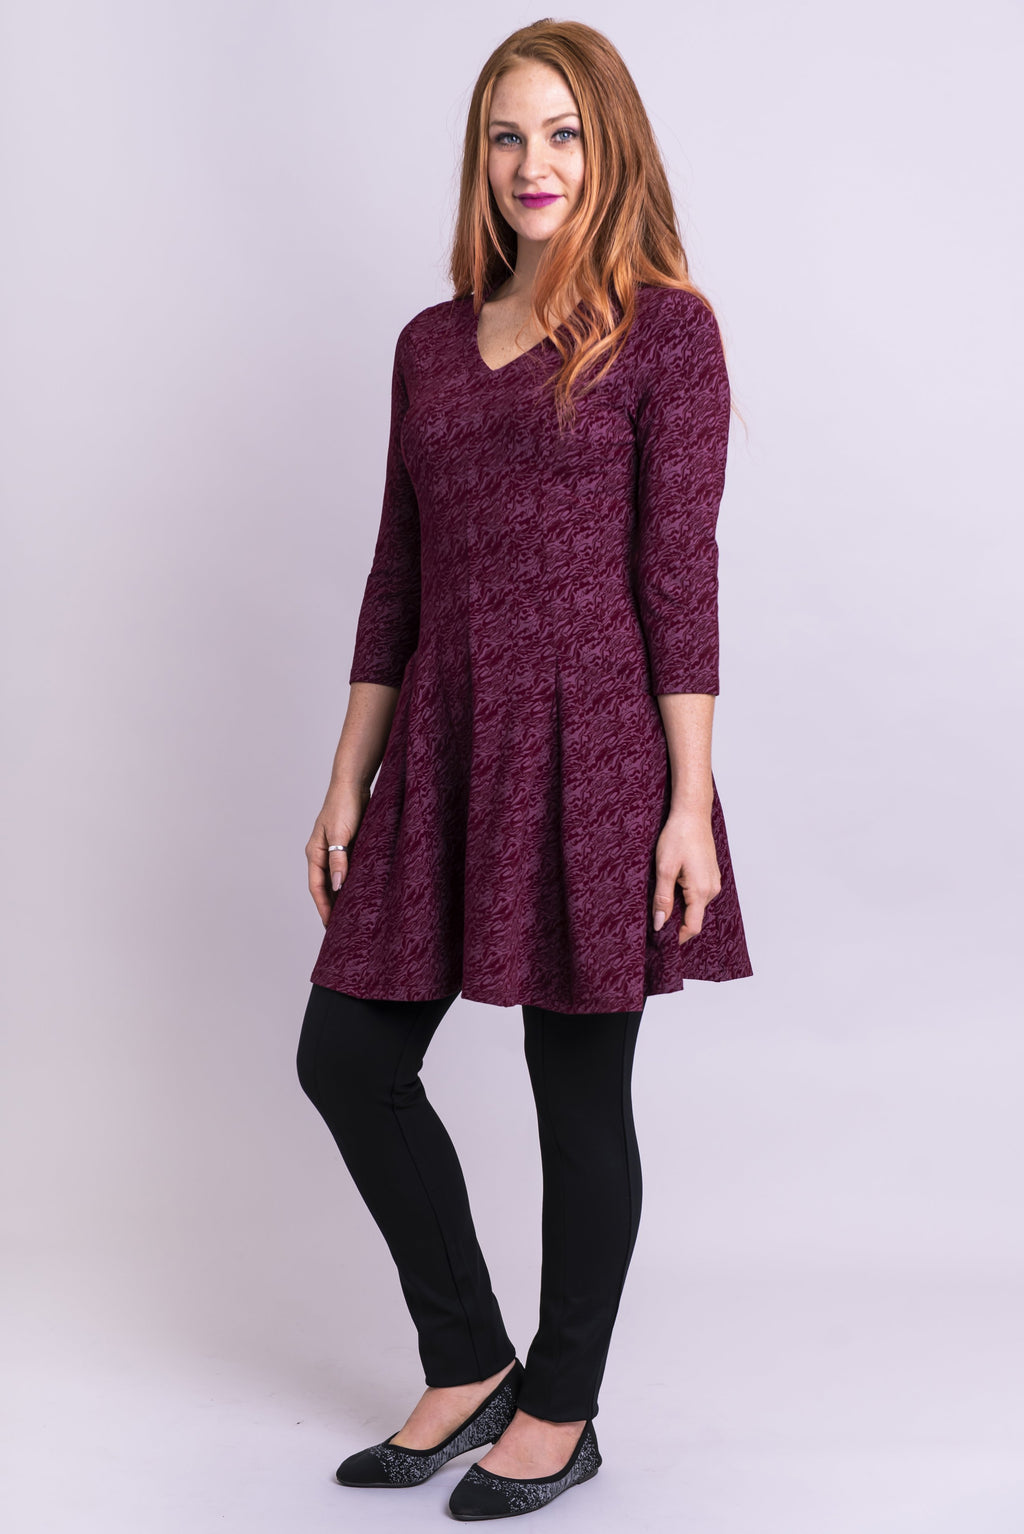 Wilma Tunic, Bordeaux Wine, Bamboo - Blue Sky Clothing Co